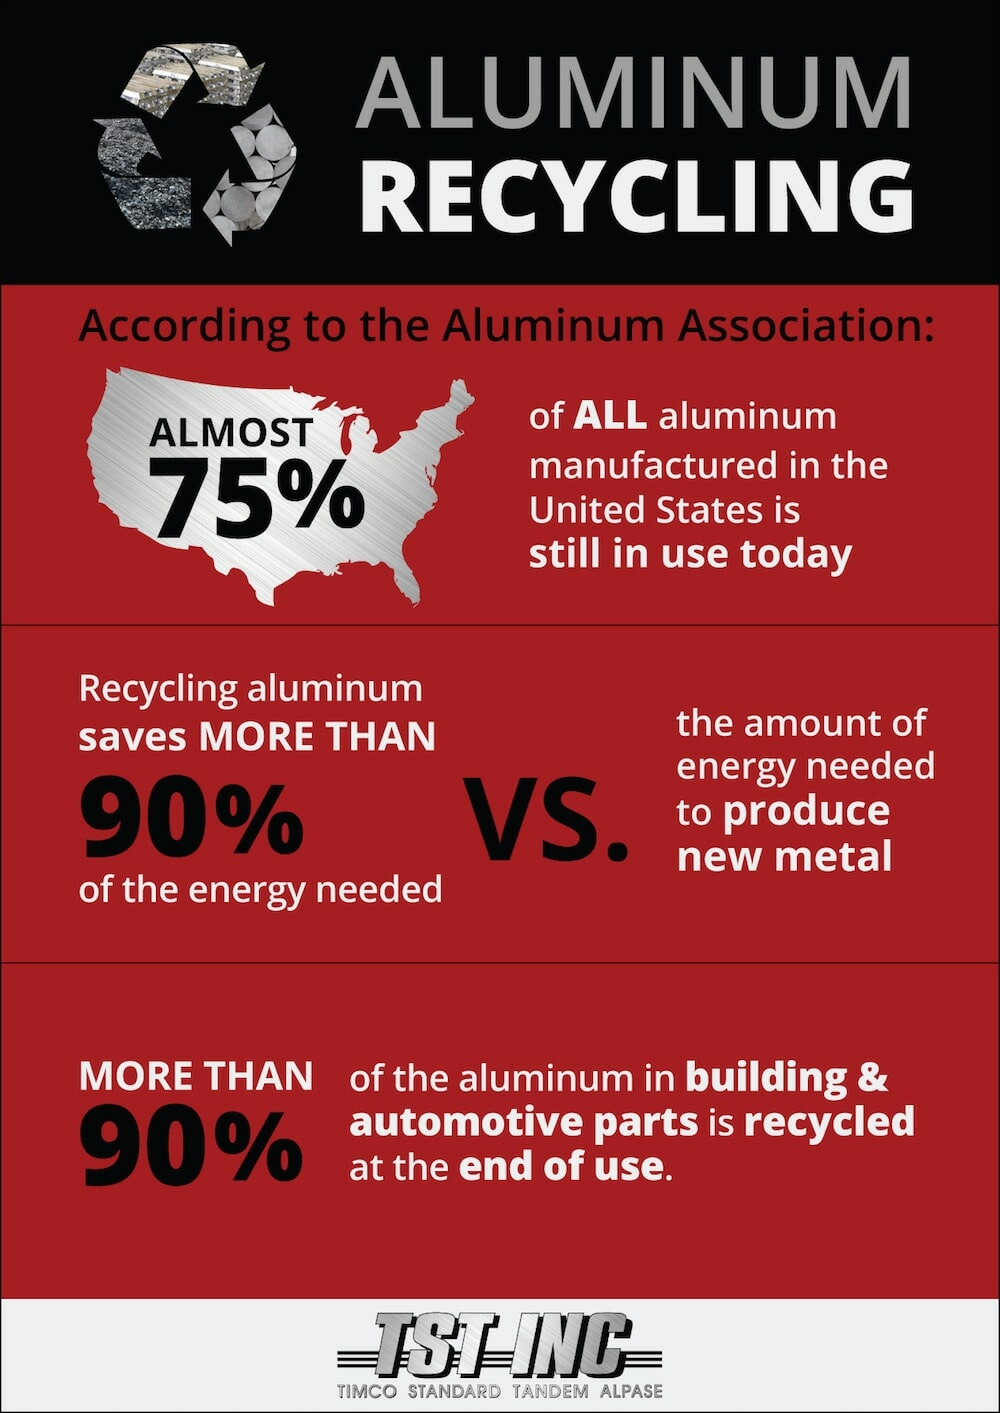 Aluminum Recycling infographic with stats